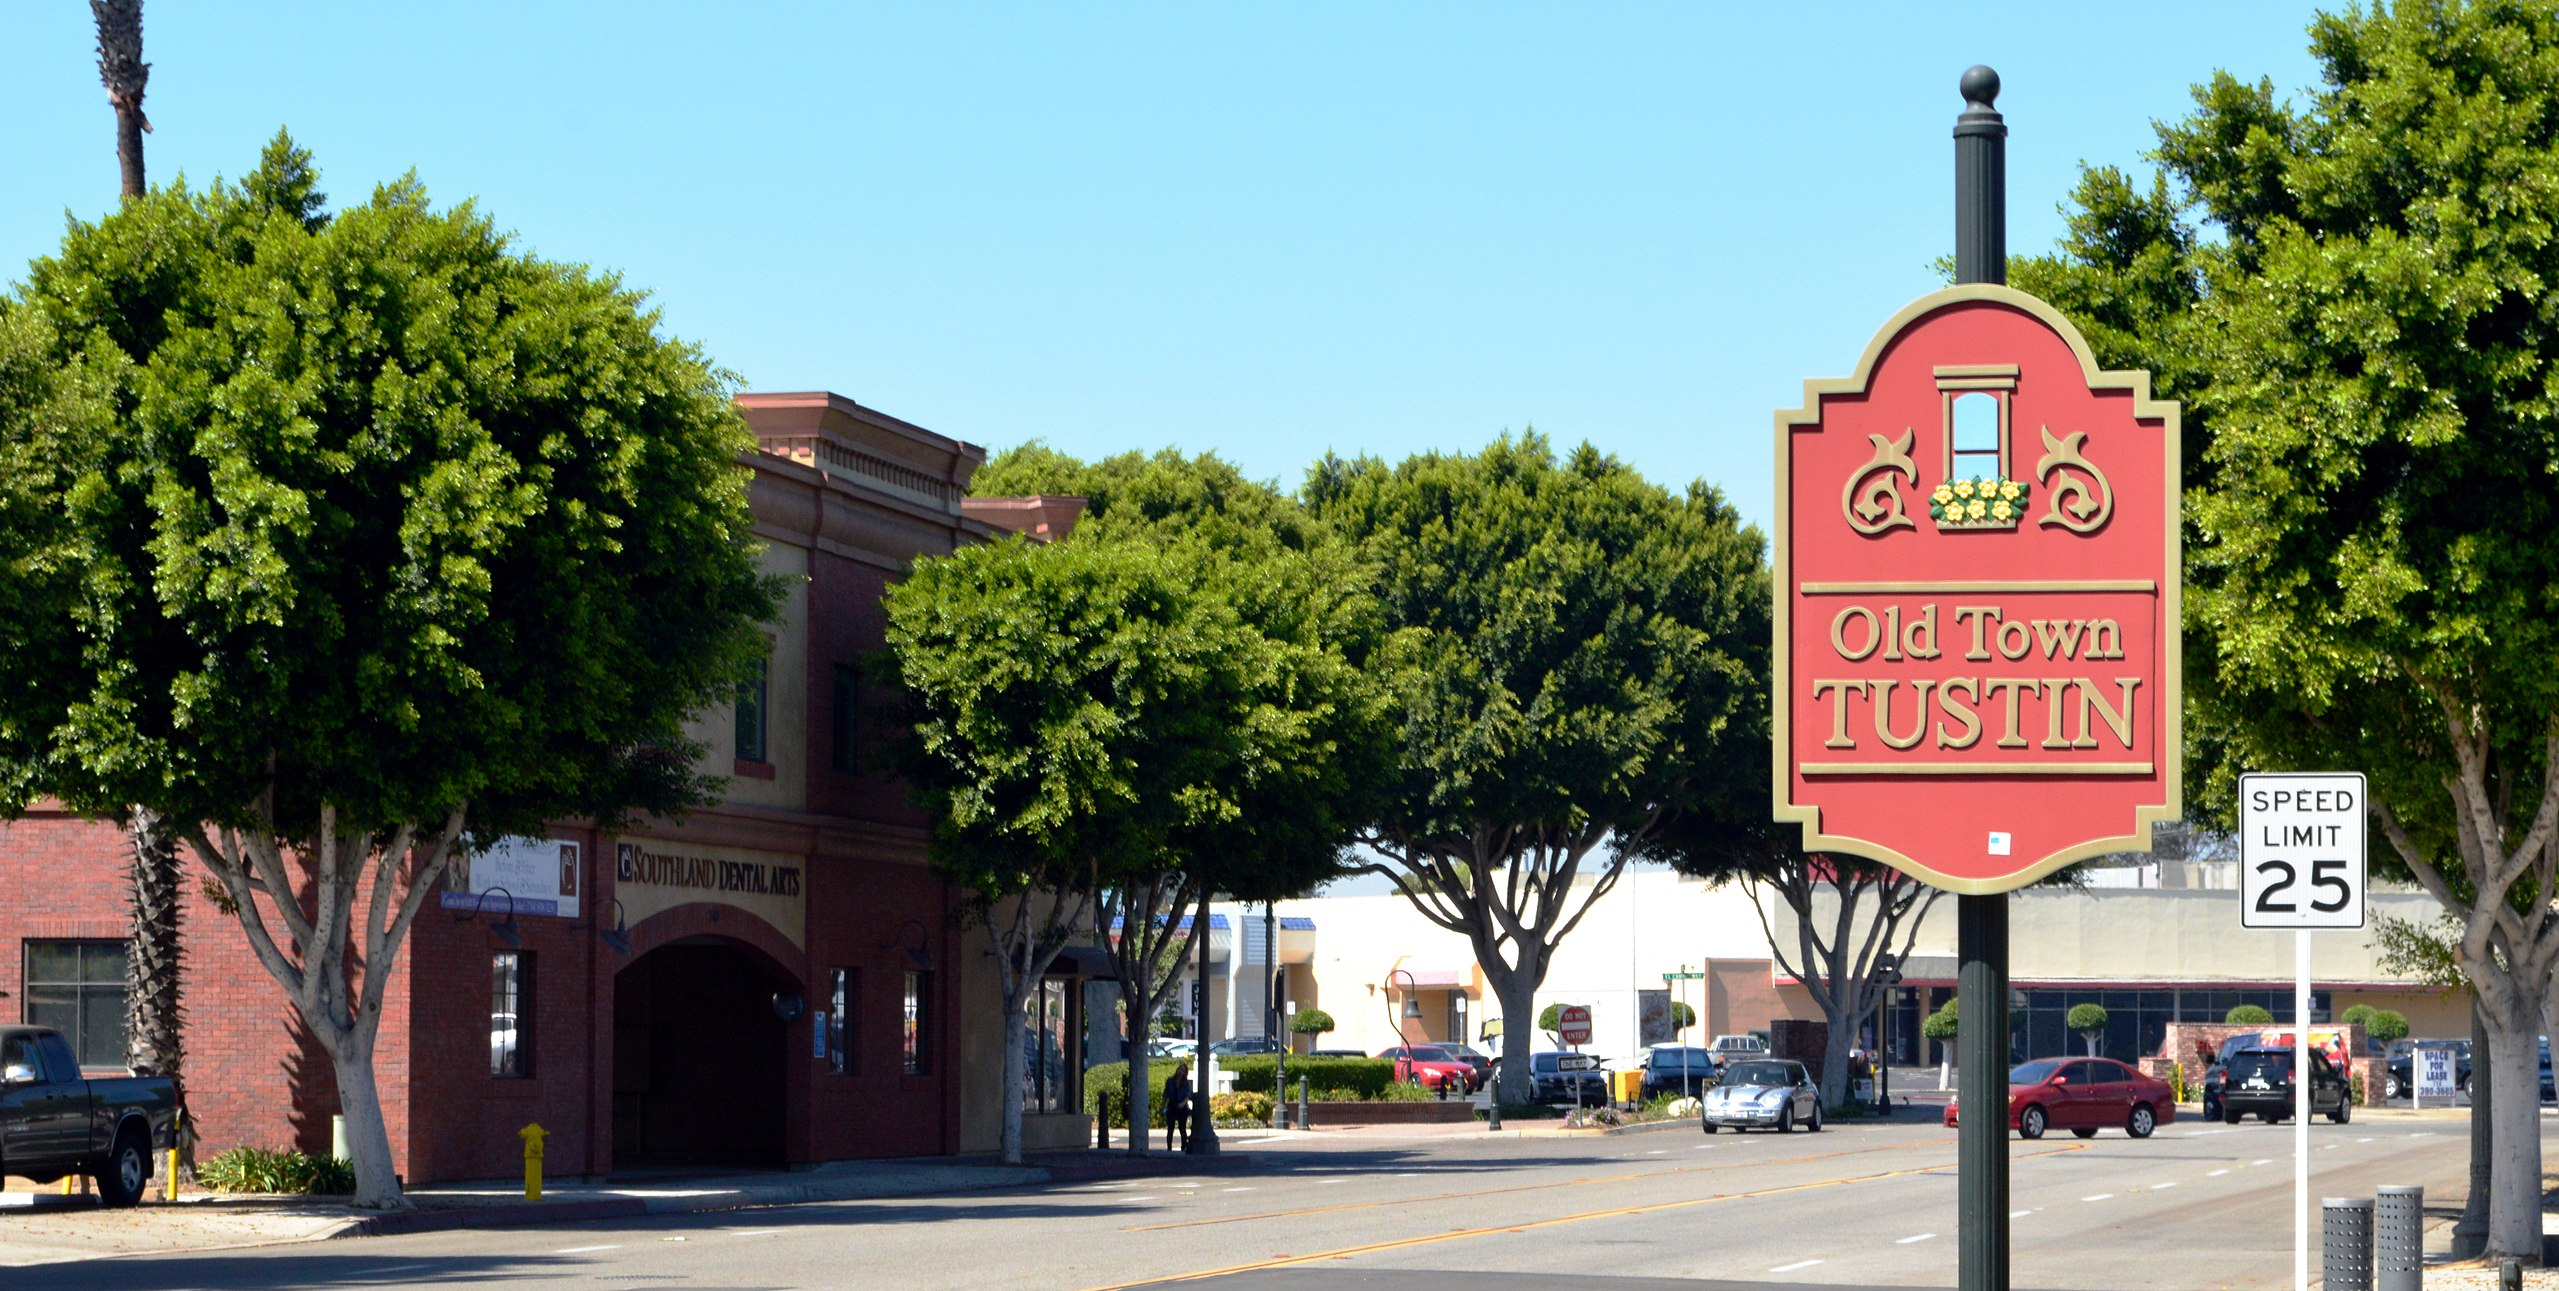 Best Historical Sights and Landmarks in Santa Ana